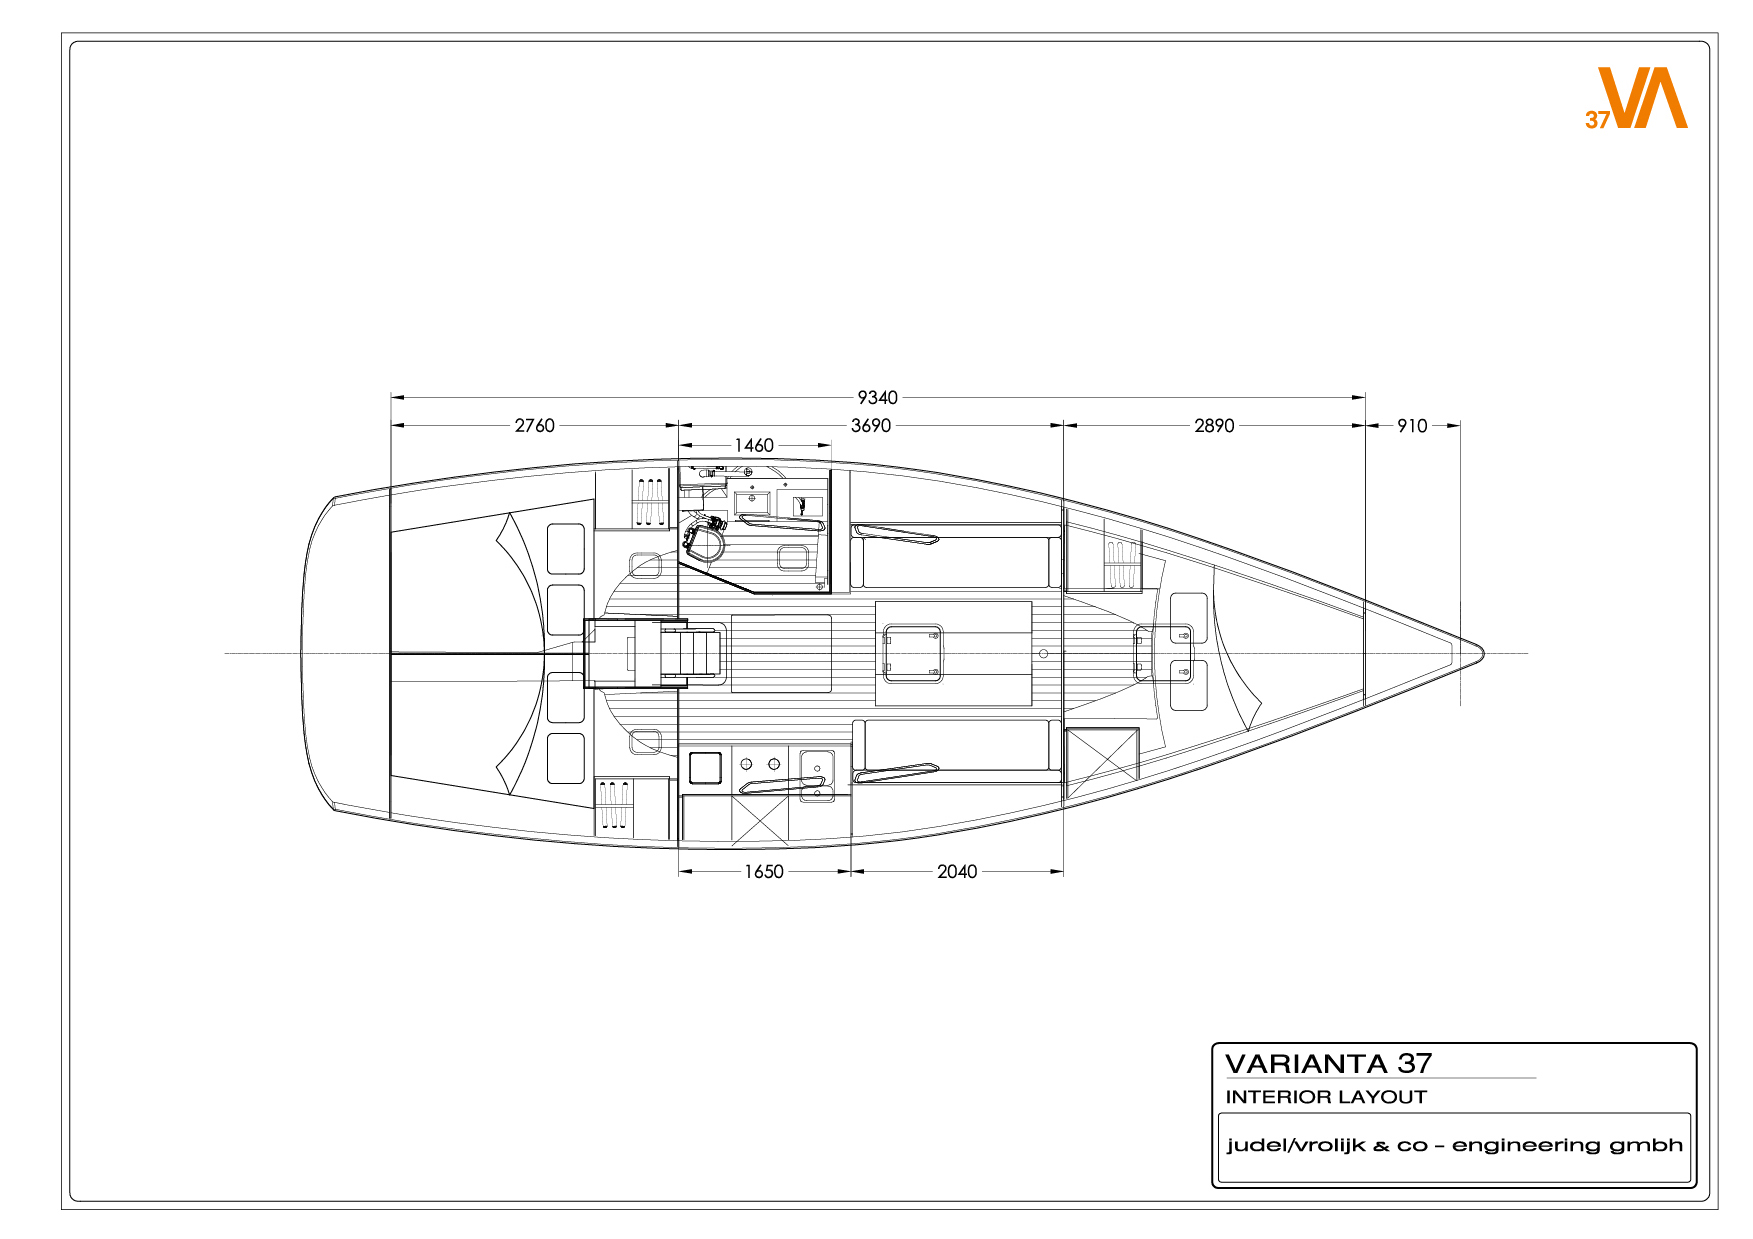 Varianta 37 - VARIANTA37_Interior_layout_low-c3328.jpg